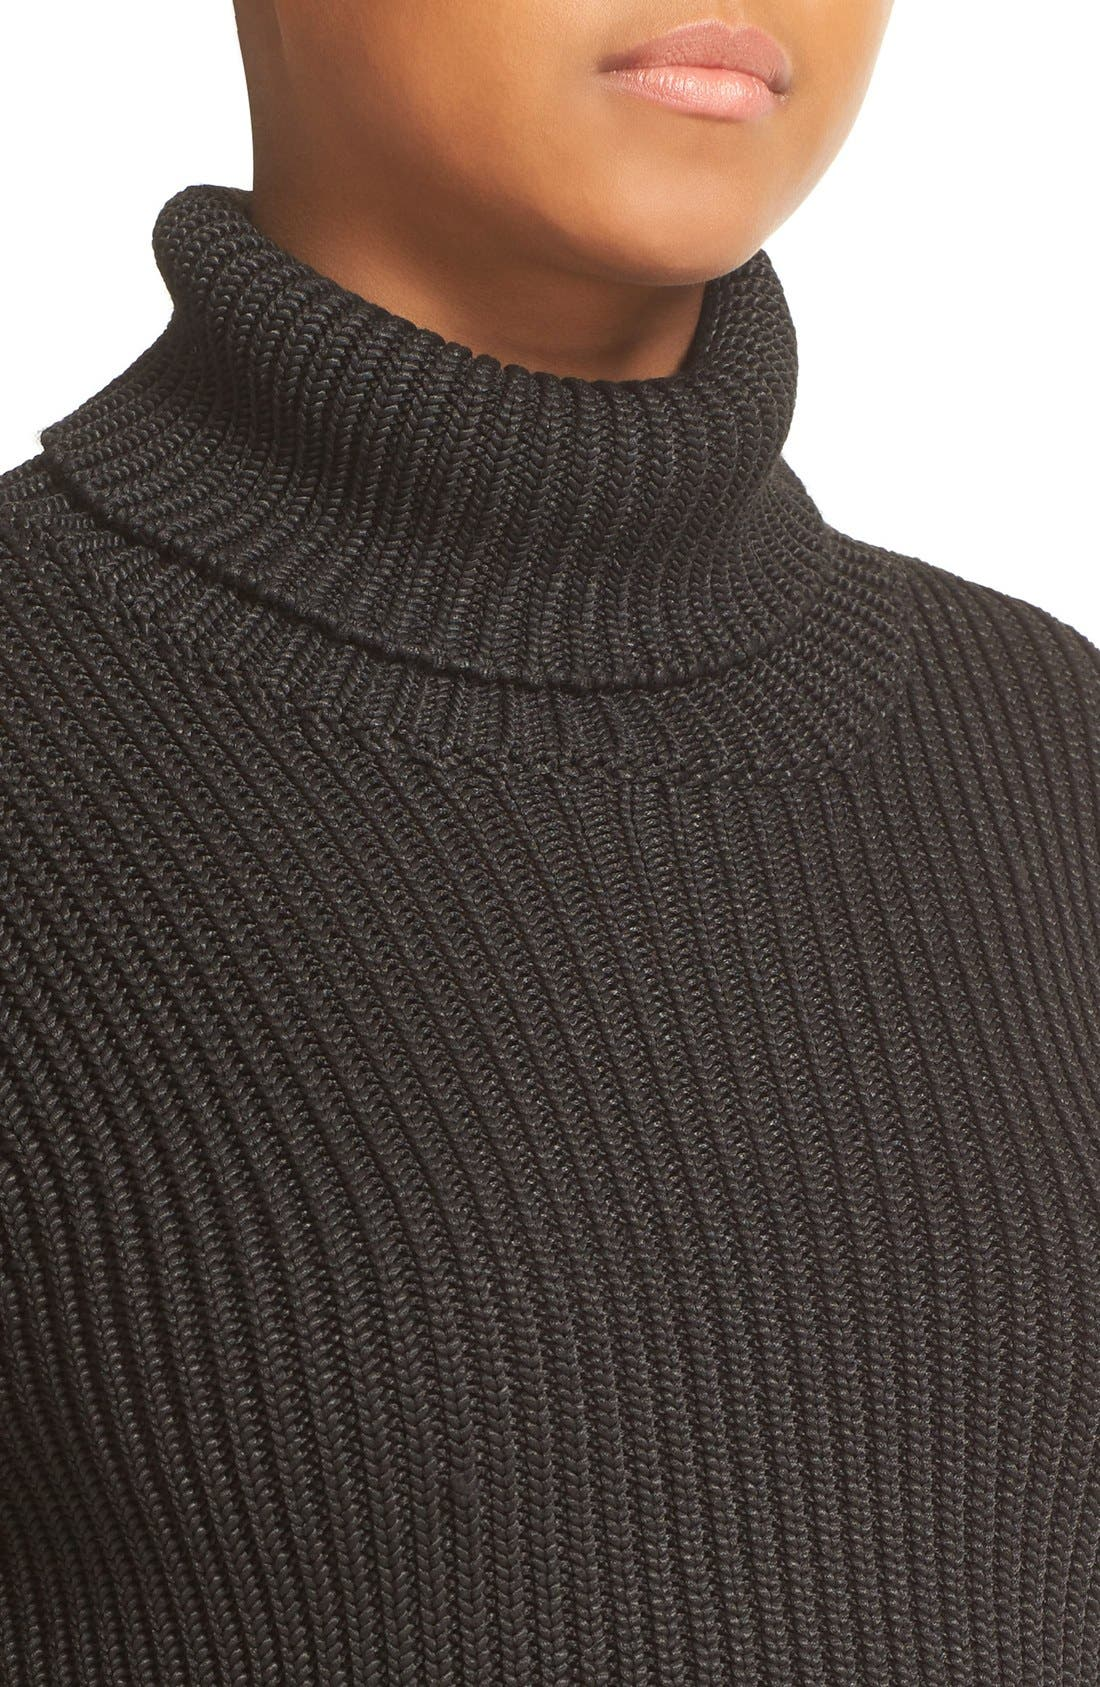 Alternate Image 4  - Alice + Olivia Sierra Crop Rib Knit Turtleneck